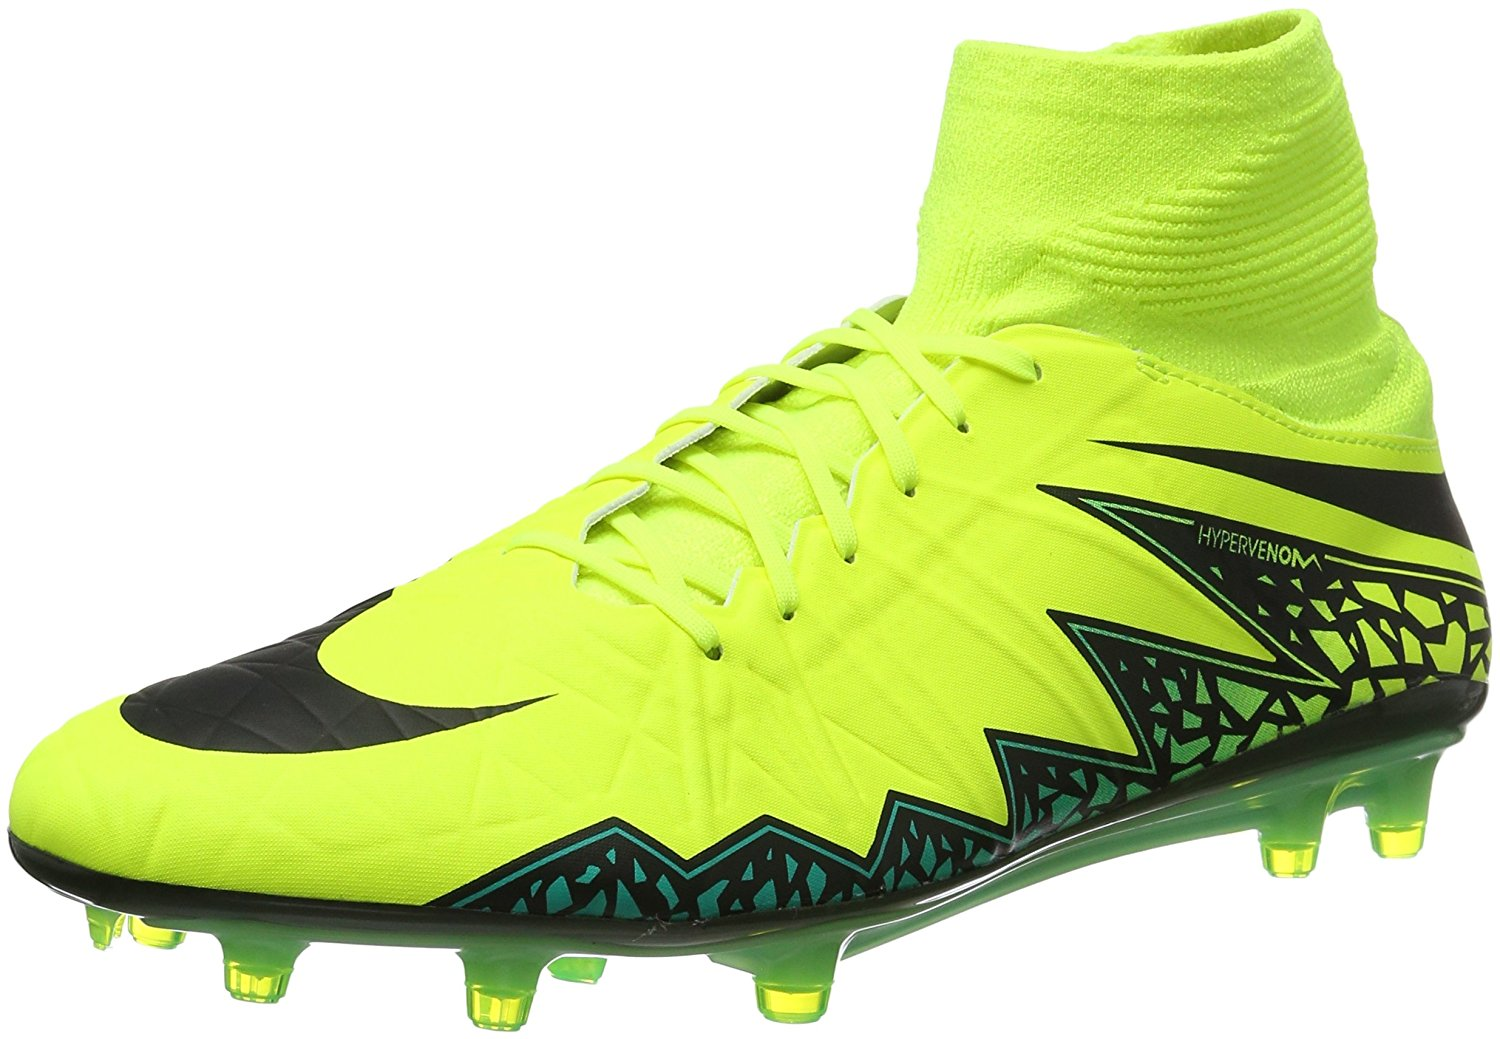 37edfc69161c Get Quotations · Nike Hypervenom Phatal II Dynamic Fit Firm Ground Cleats